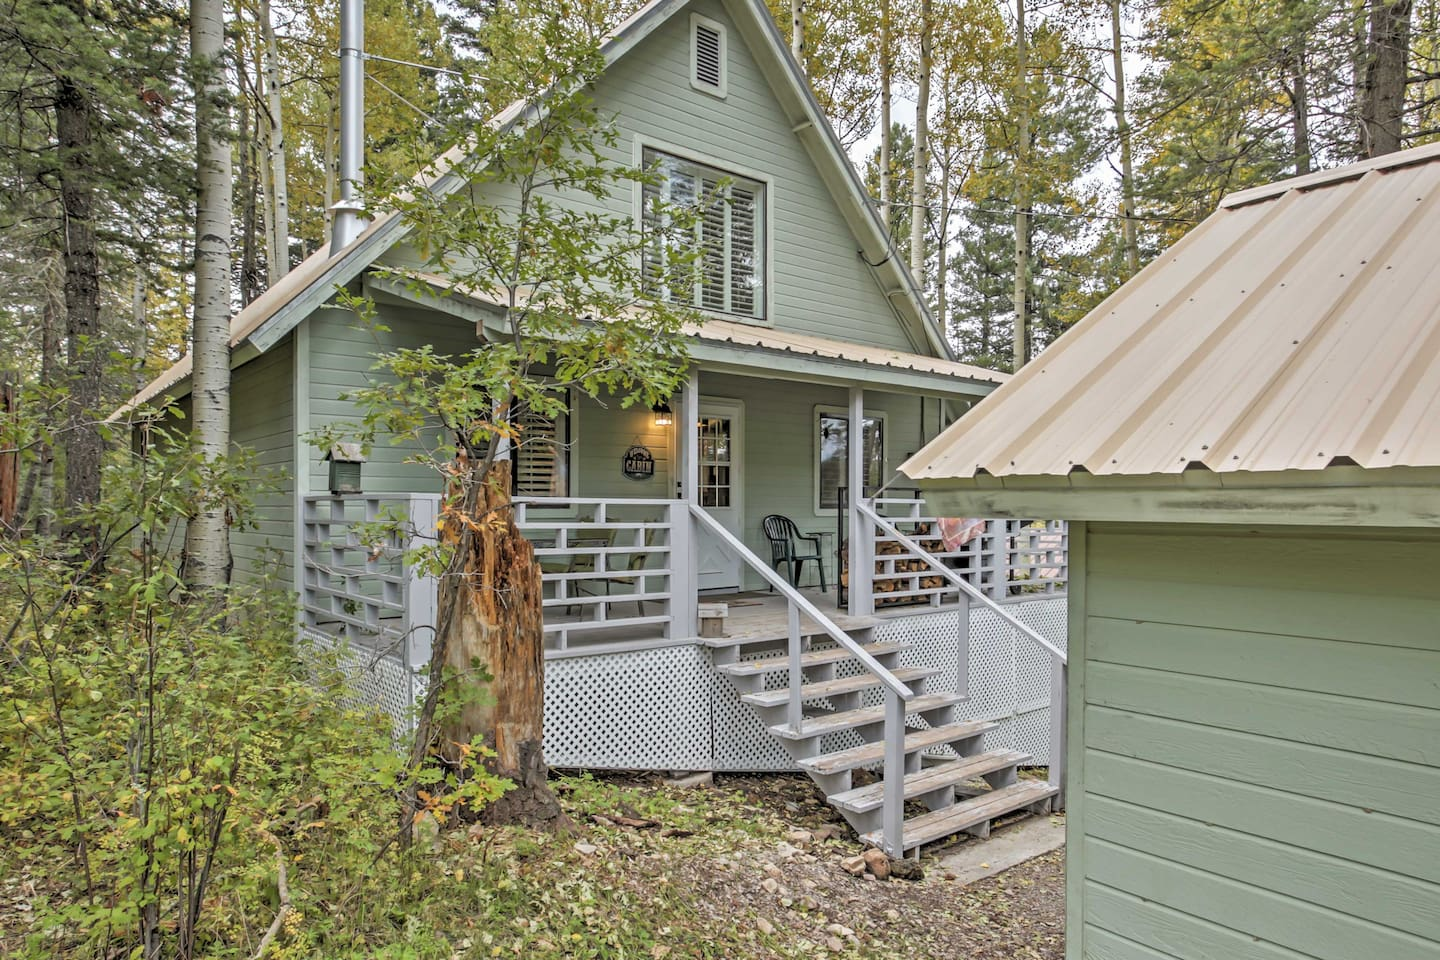 Find peaceful surroundings at this extraordinary Cloudcroft vacation rental cabin!